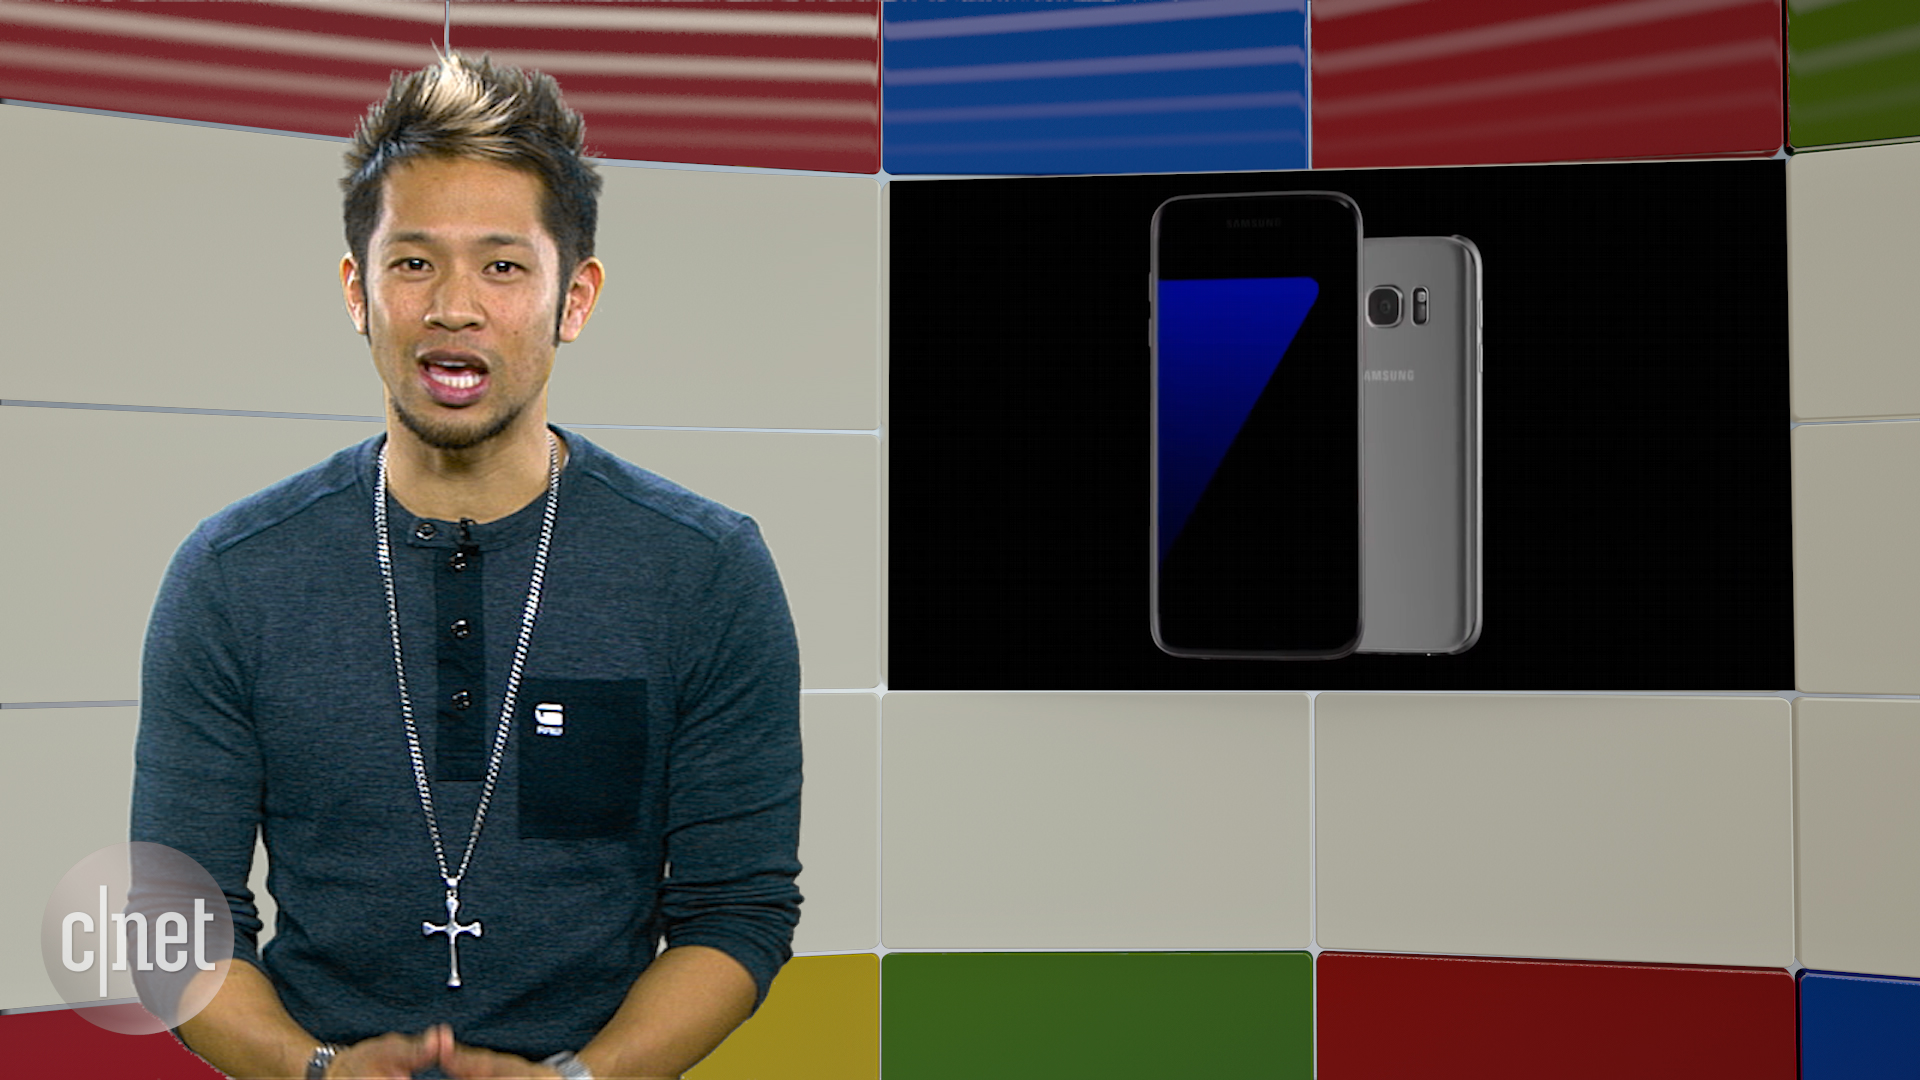 Video: The Samsung Galaxy S7 and S7 Edge reviews are in